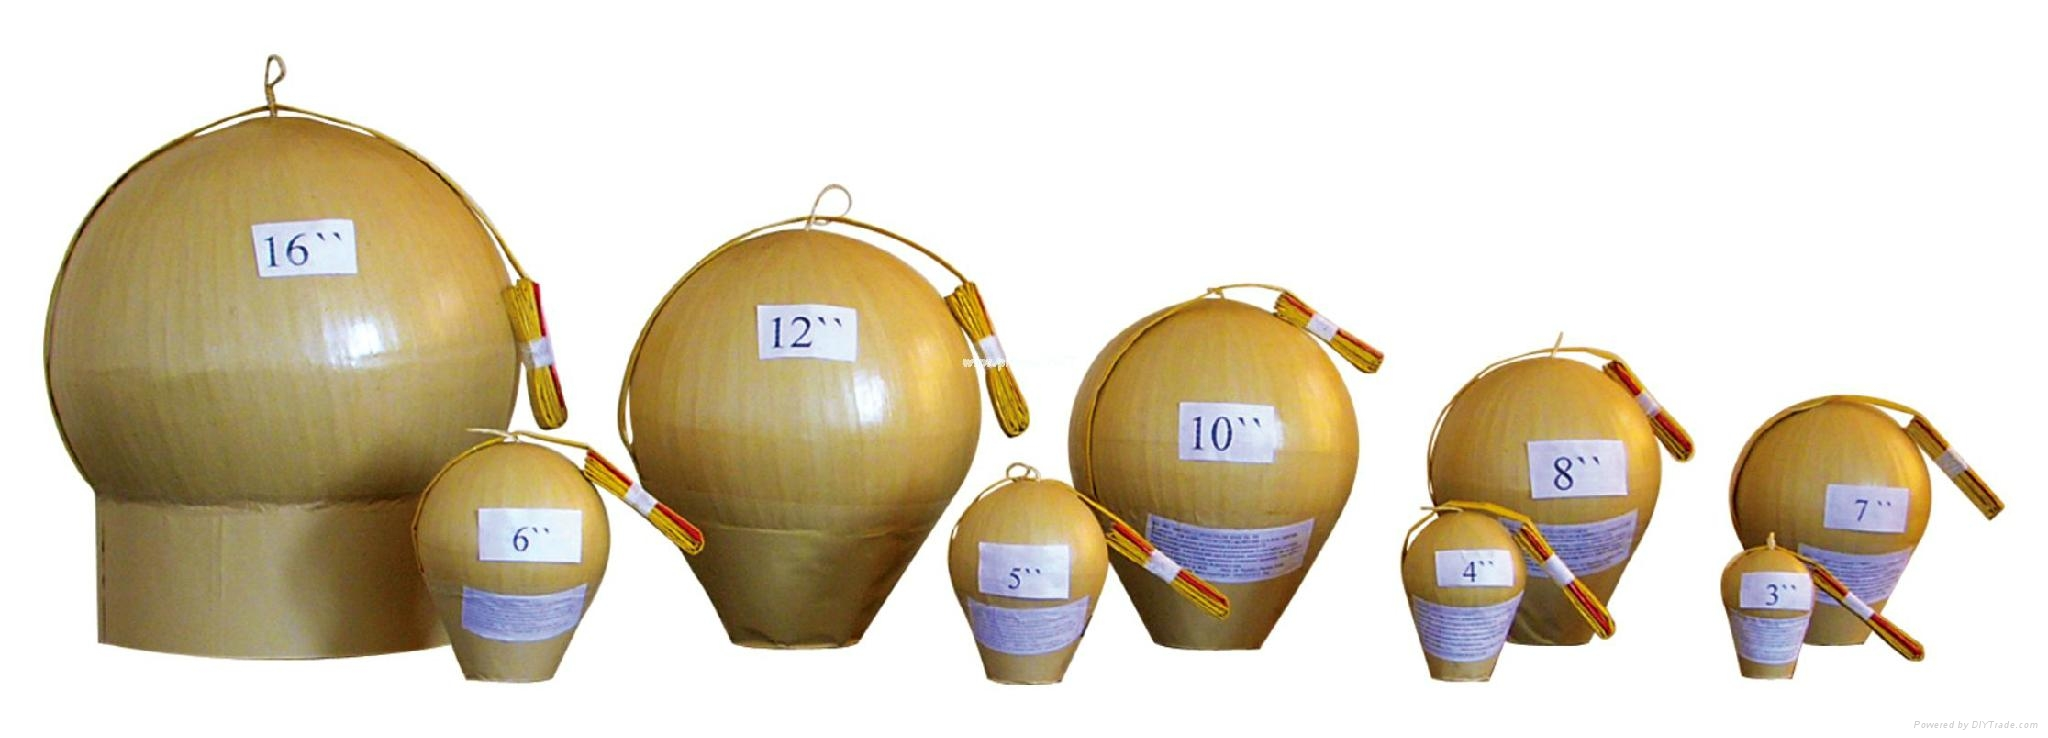 Fireworks Display Shells & Mortars for festivals different sizes 1